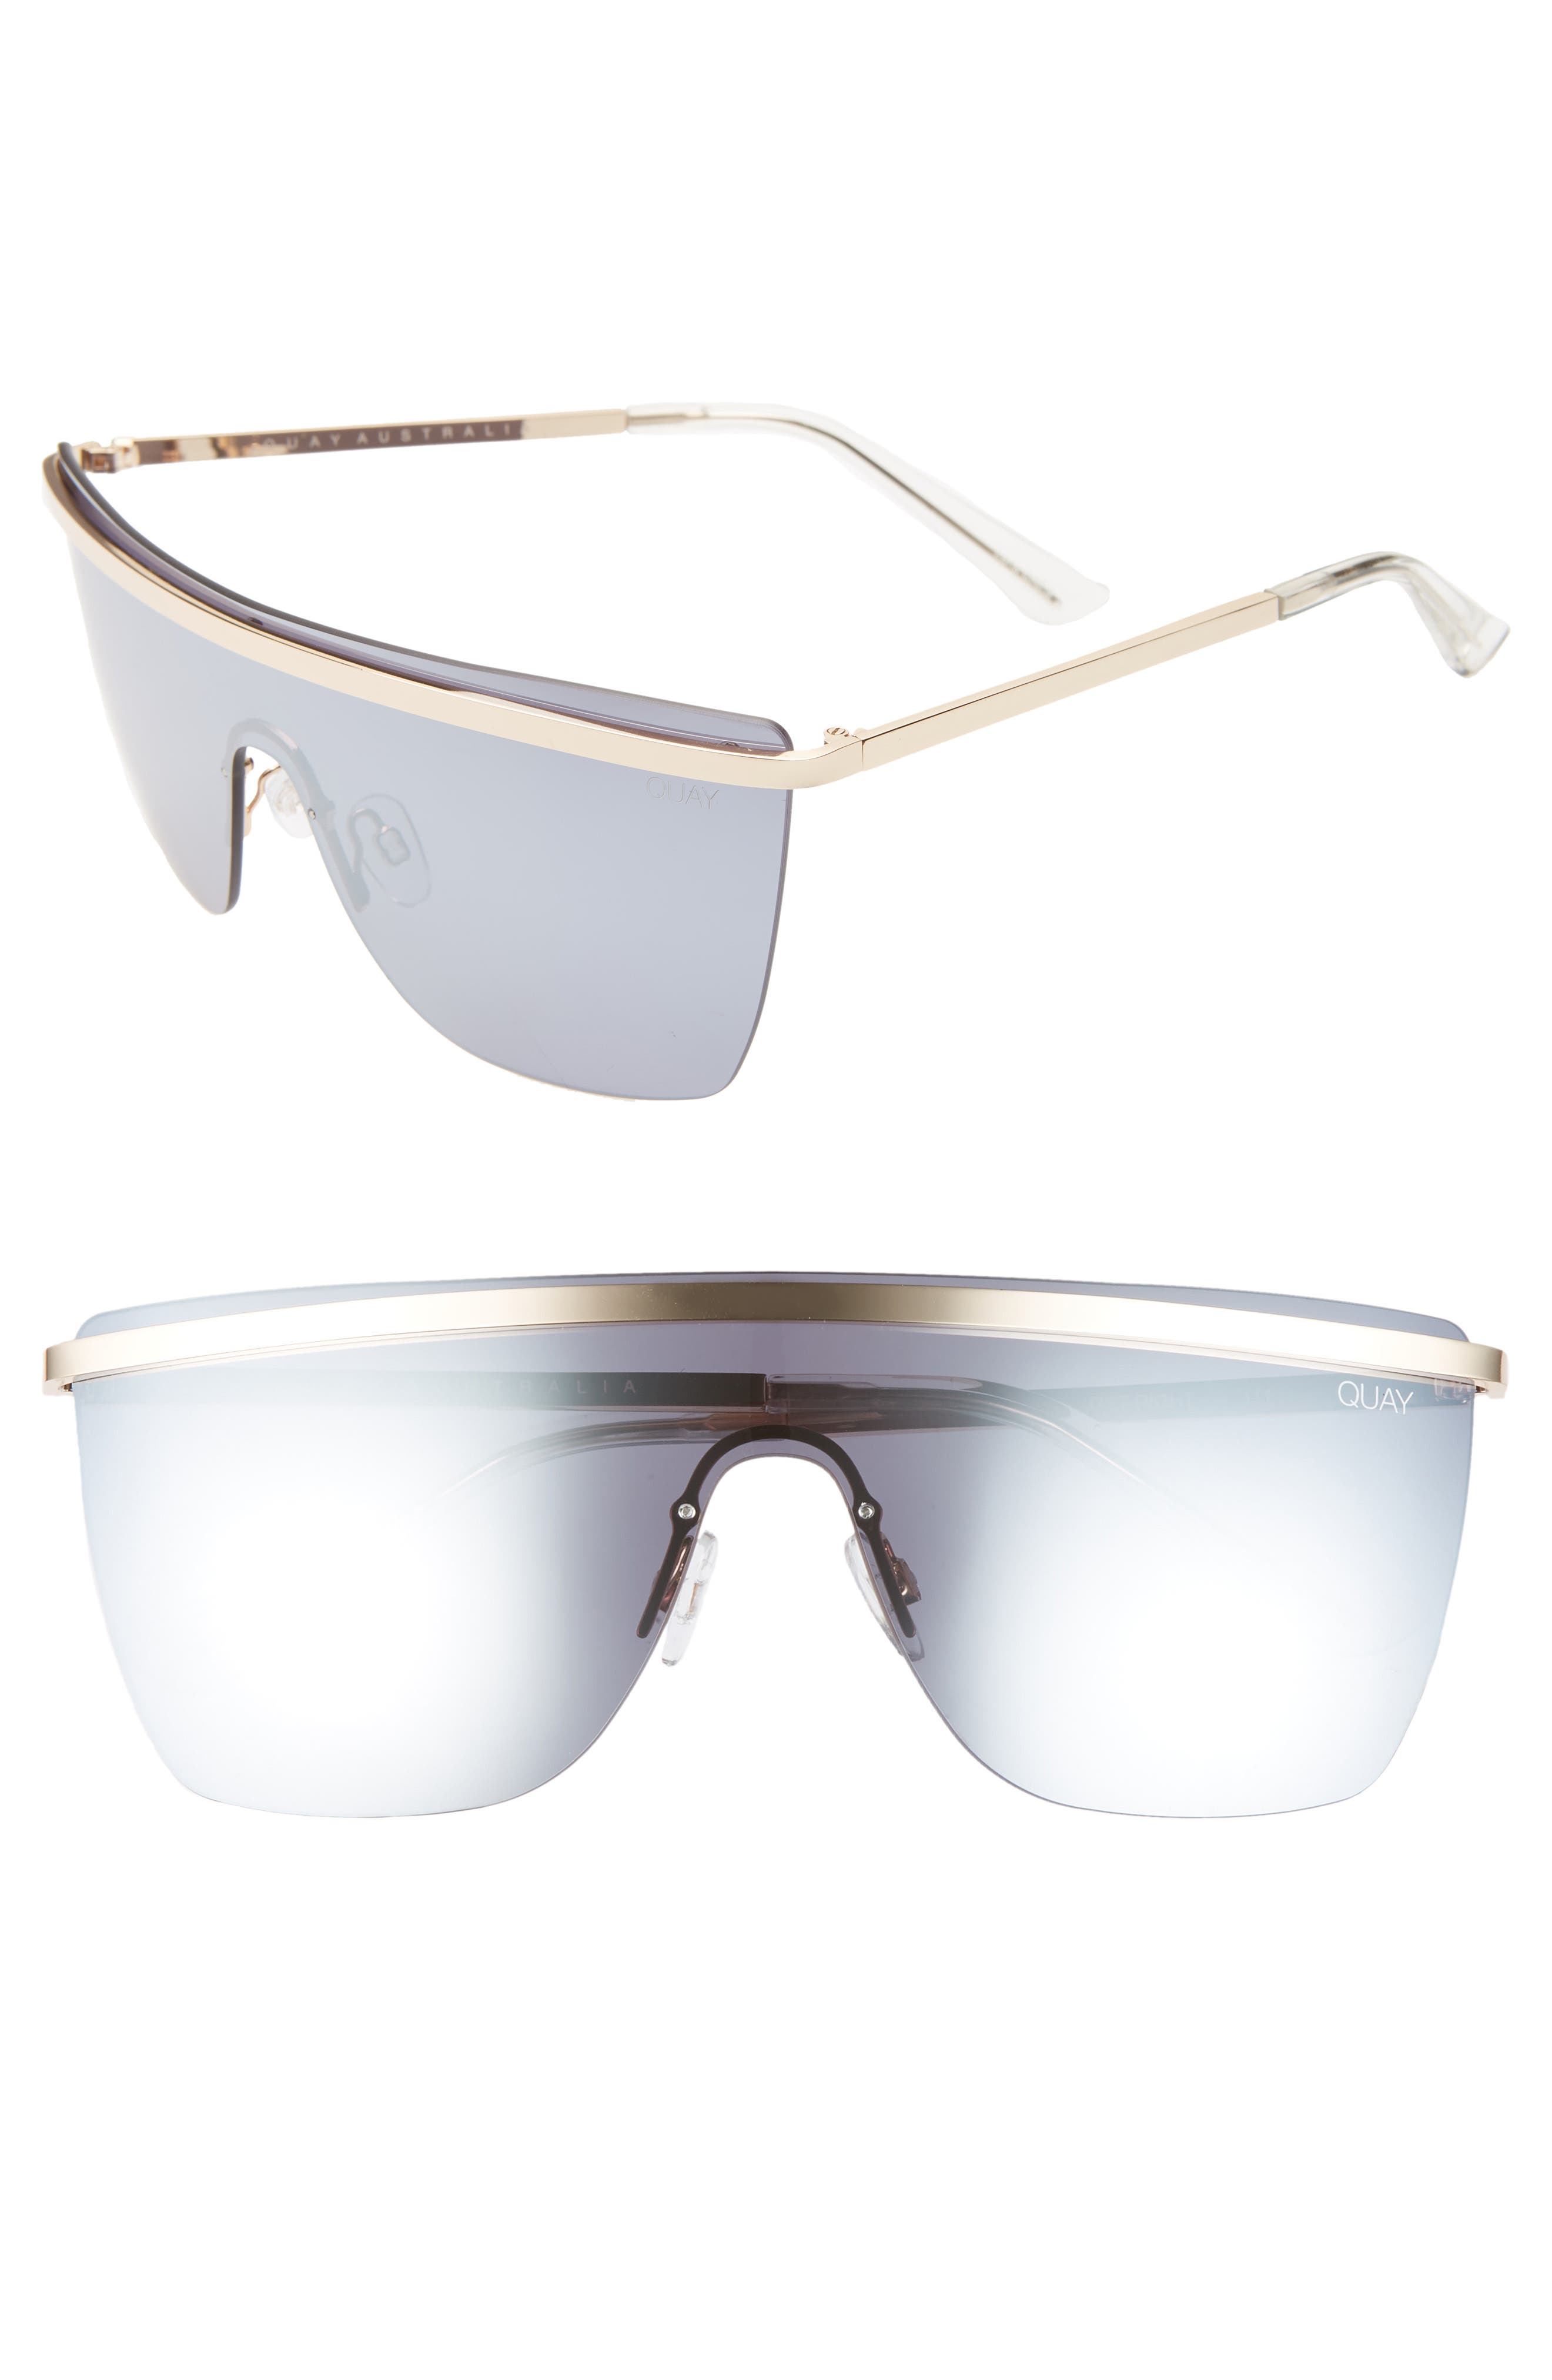 Quay Sunglasses X JLO GET RIGHT 54MM FLAT TOP SHIELD SUNGLASSES - GOLD / SILVER